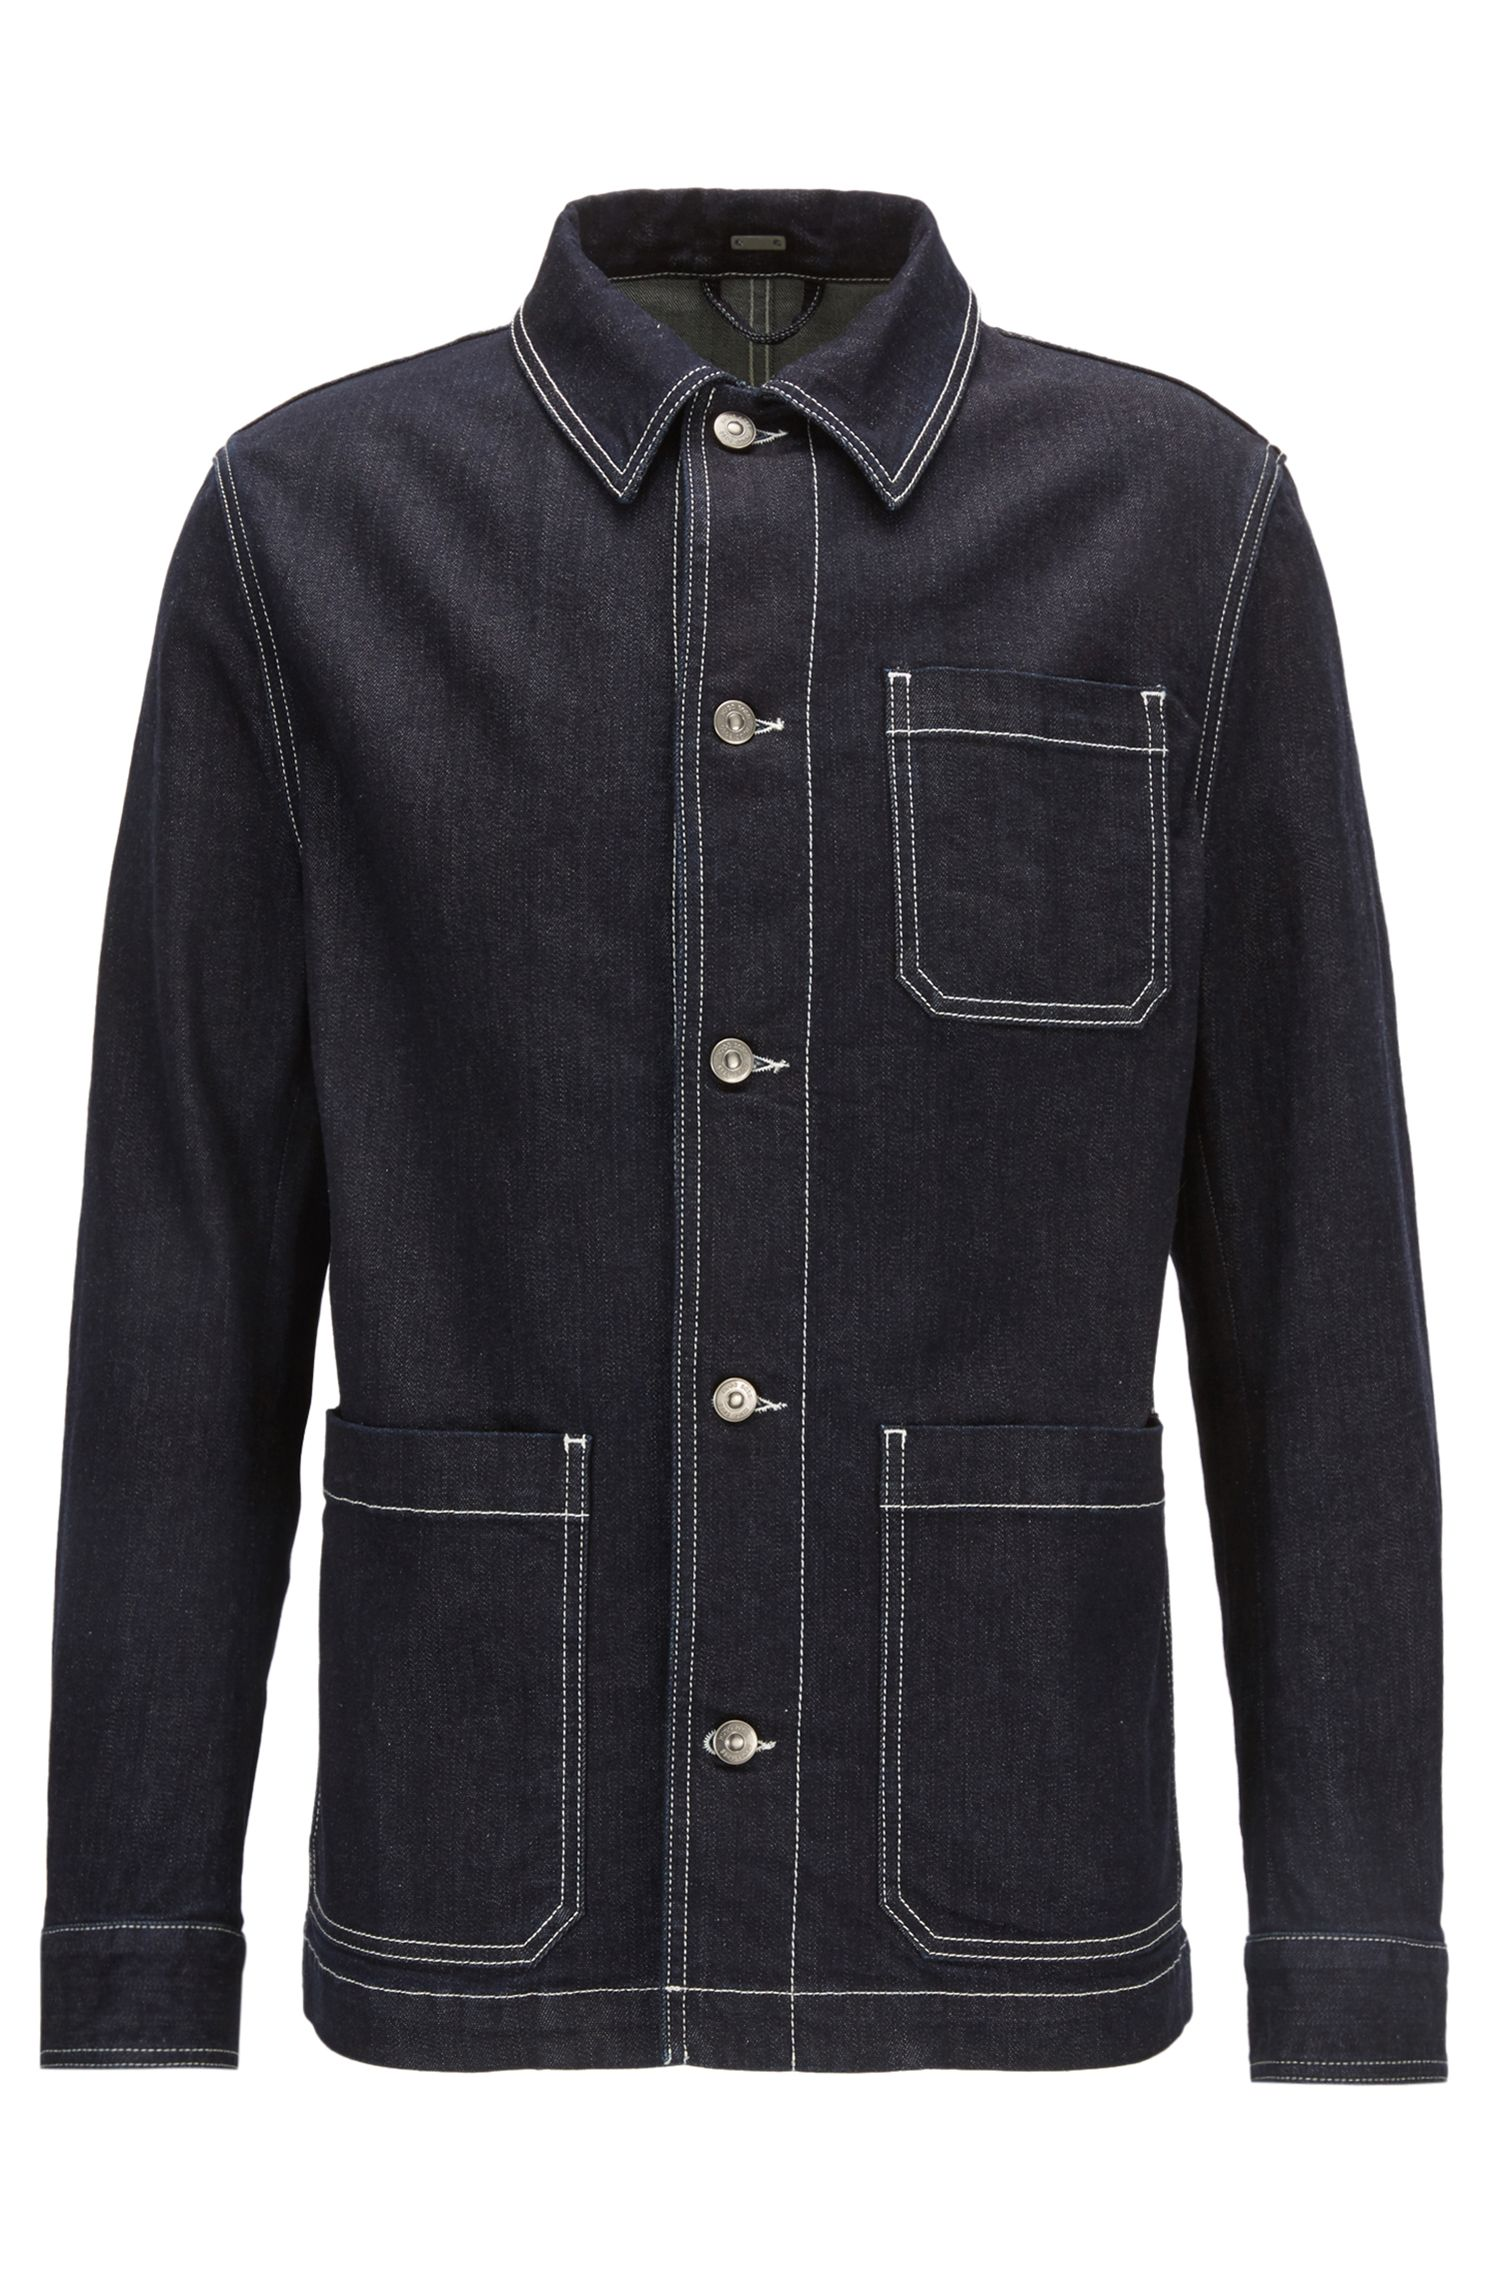 Cotton Blend Denim Jacket | Riverside